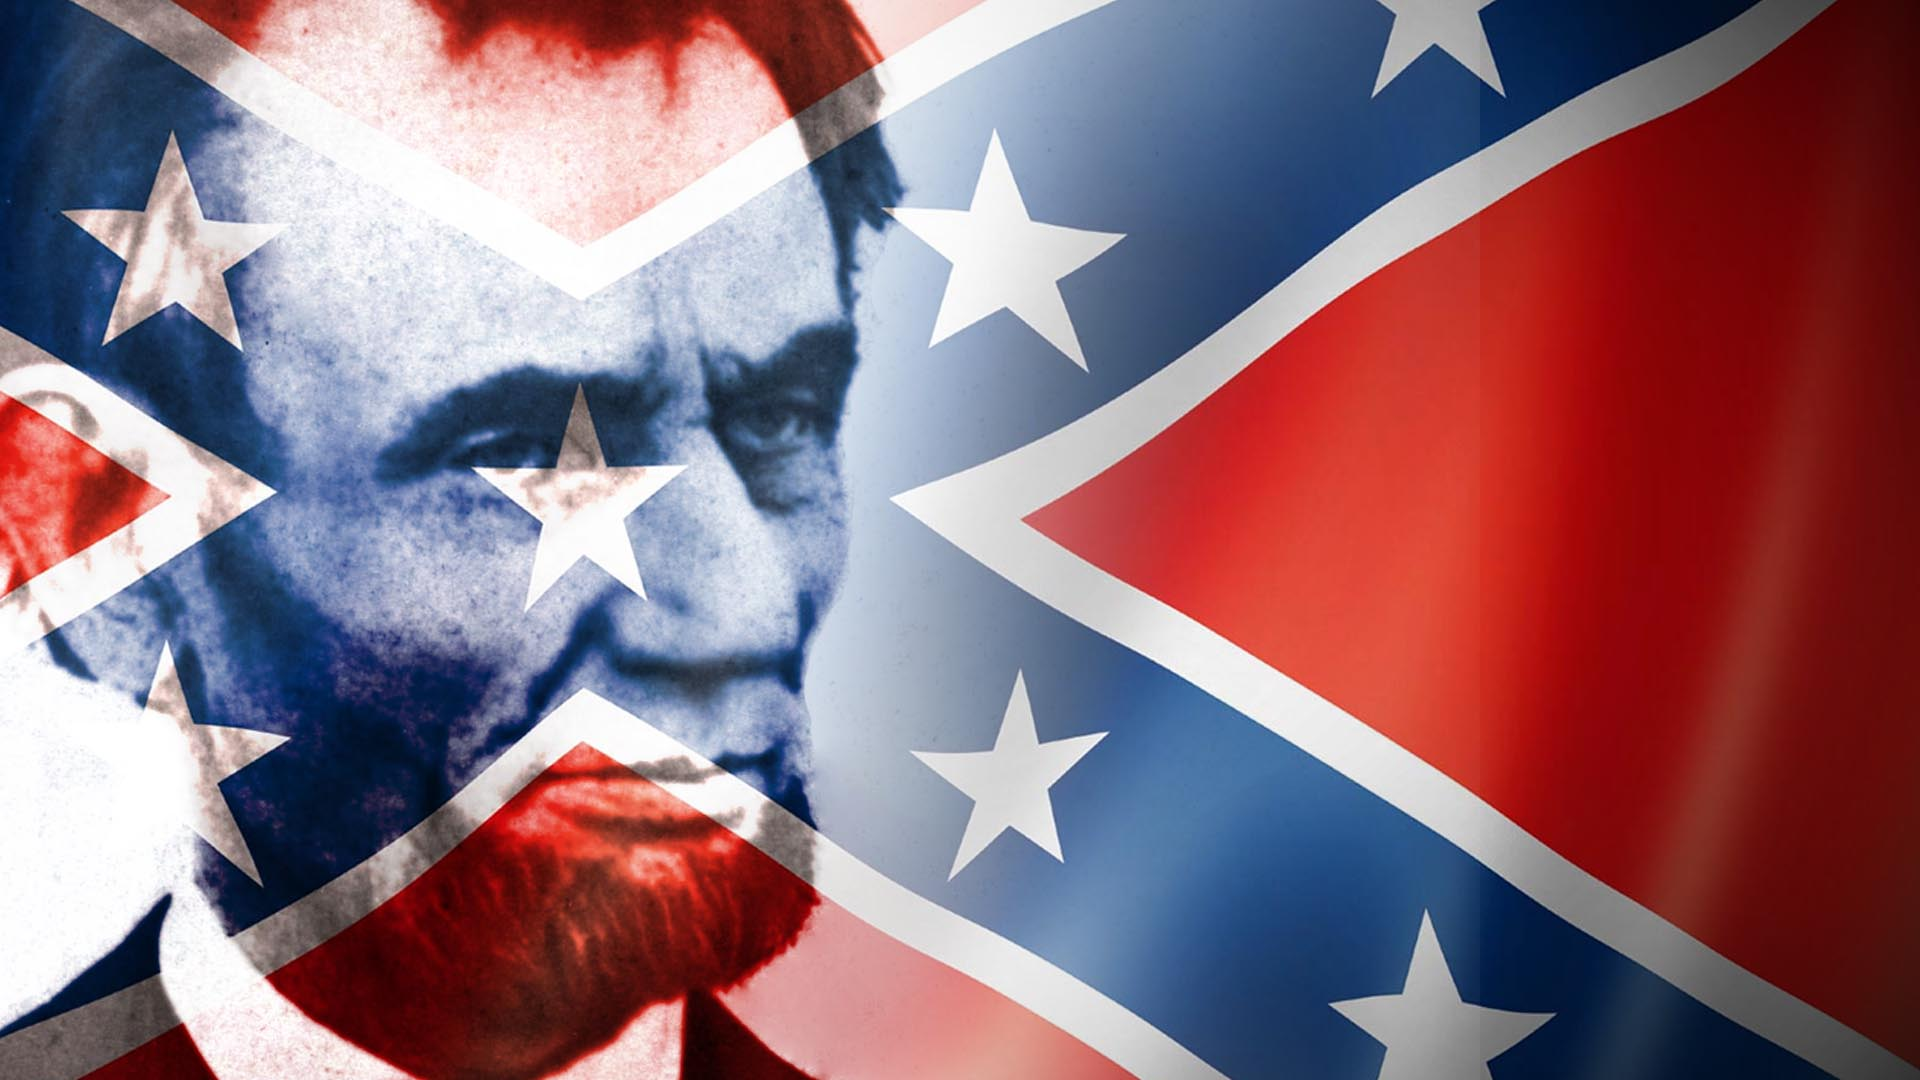 ar 208 racism lincoln confederate monuments apologia radio